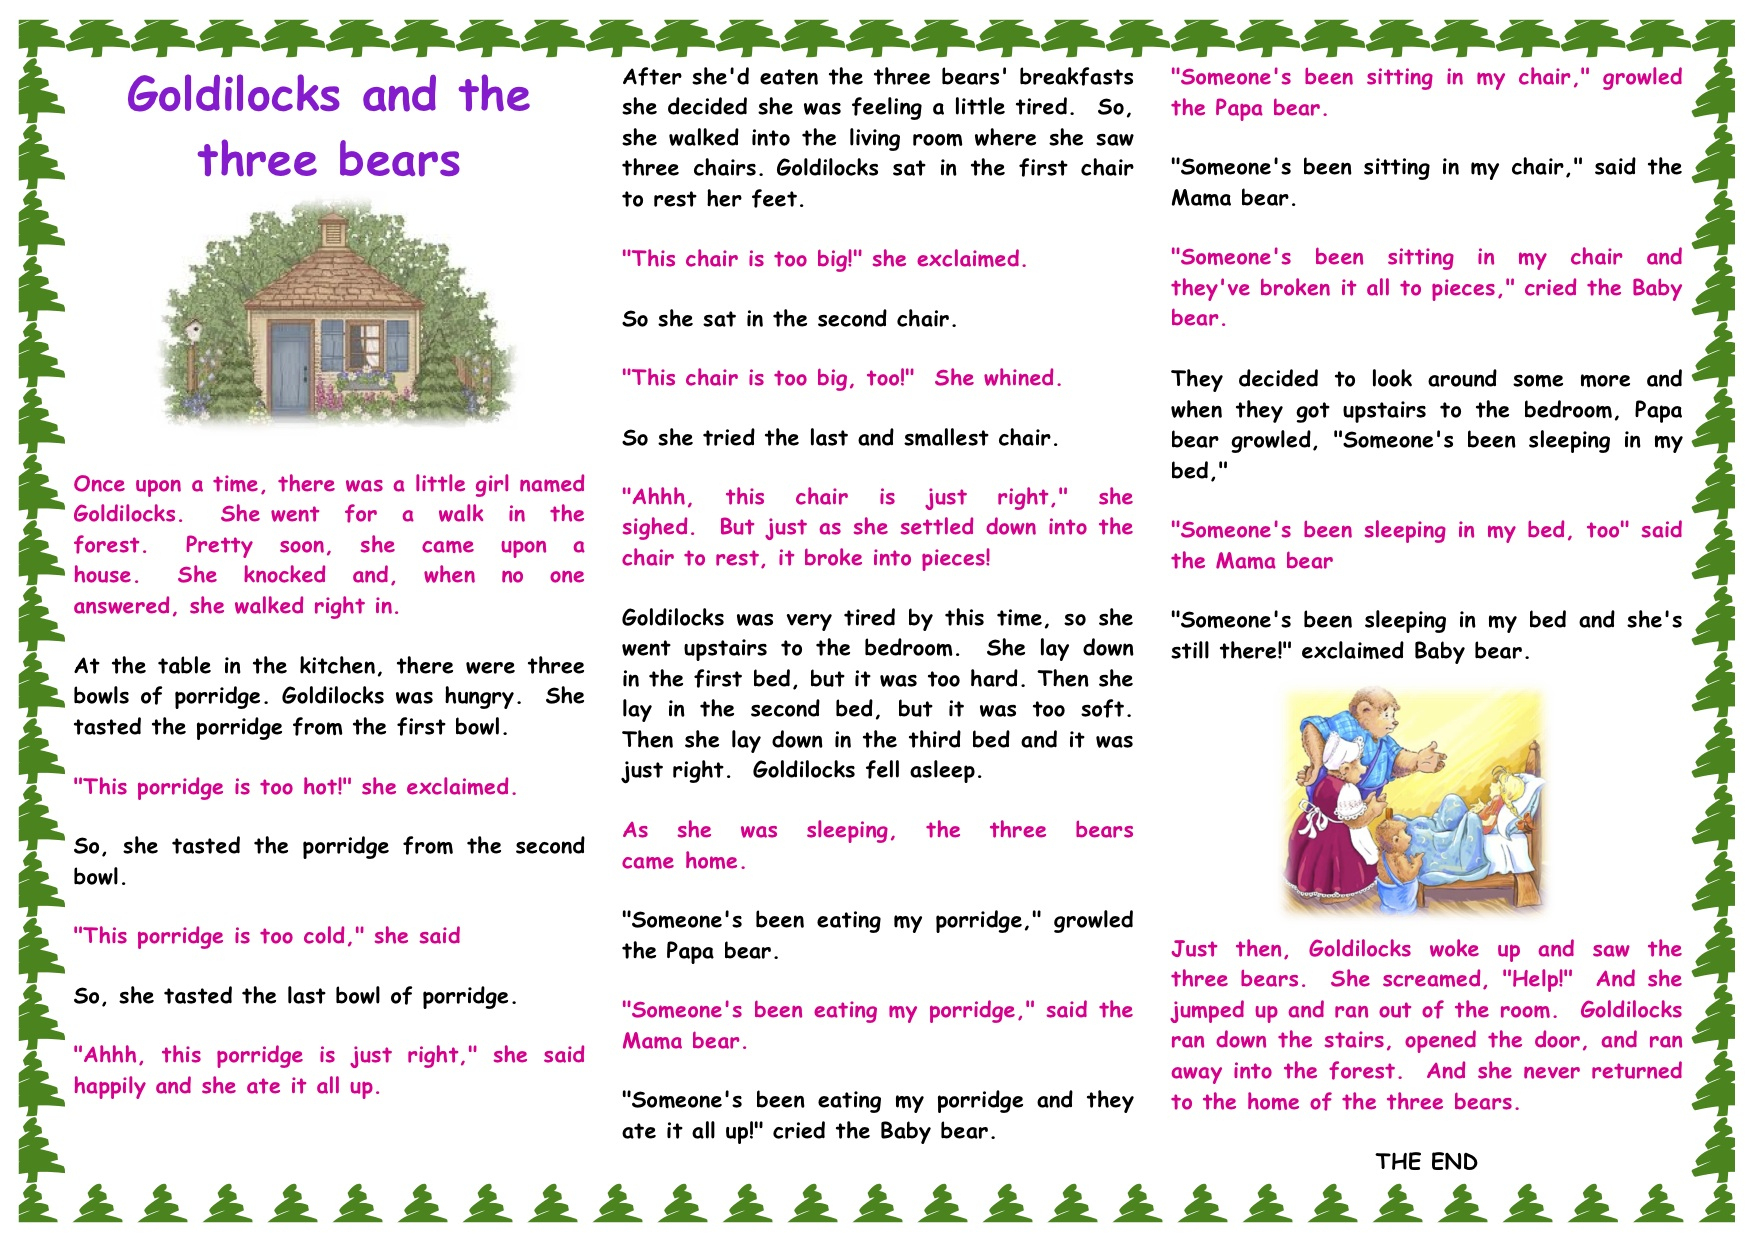 Goldilocks And The Three Bears Story Printable - Free Printable Goldilocks And The Three Bears Story